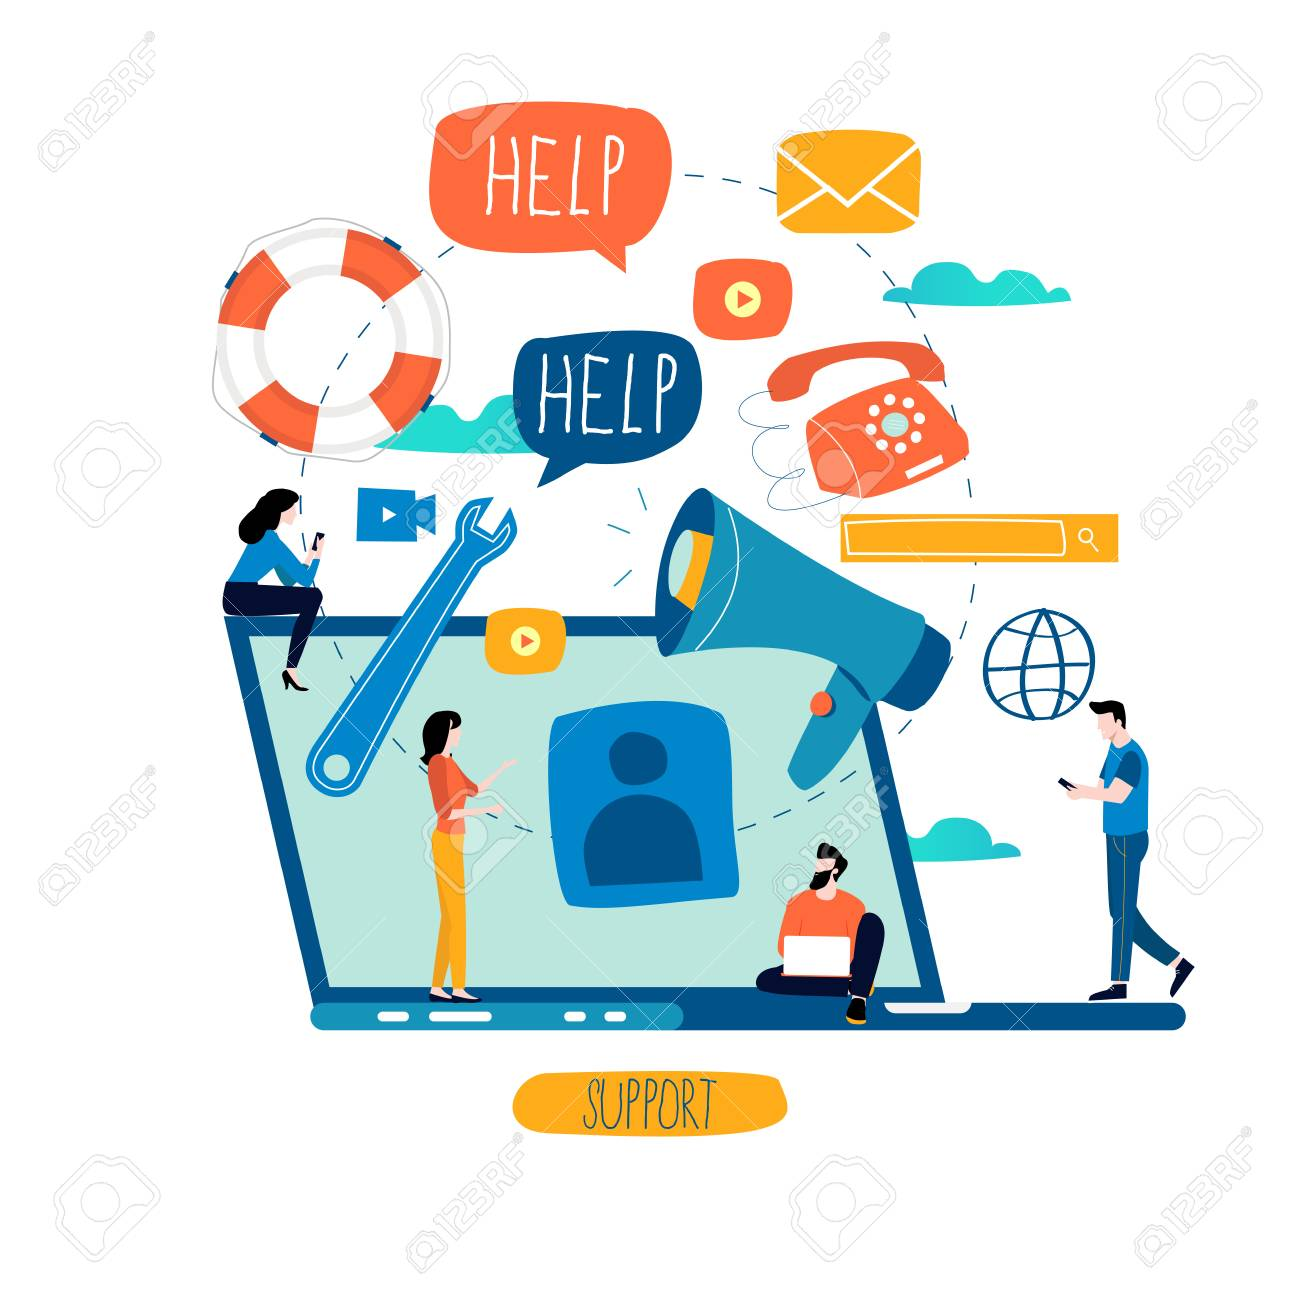 Customer service, customer assistance, call center flat vector illustration. Technical support, online help concept for web banner, business presentation, advertising material - 101204167